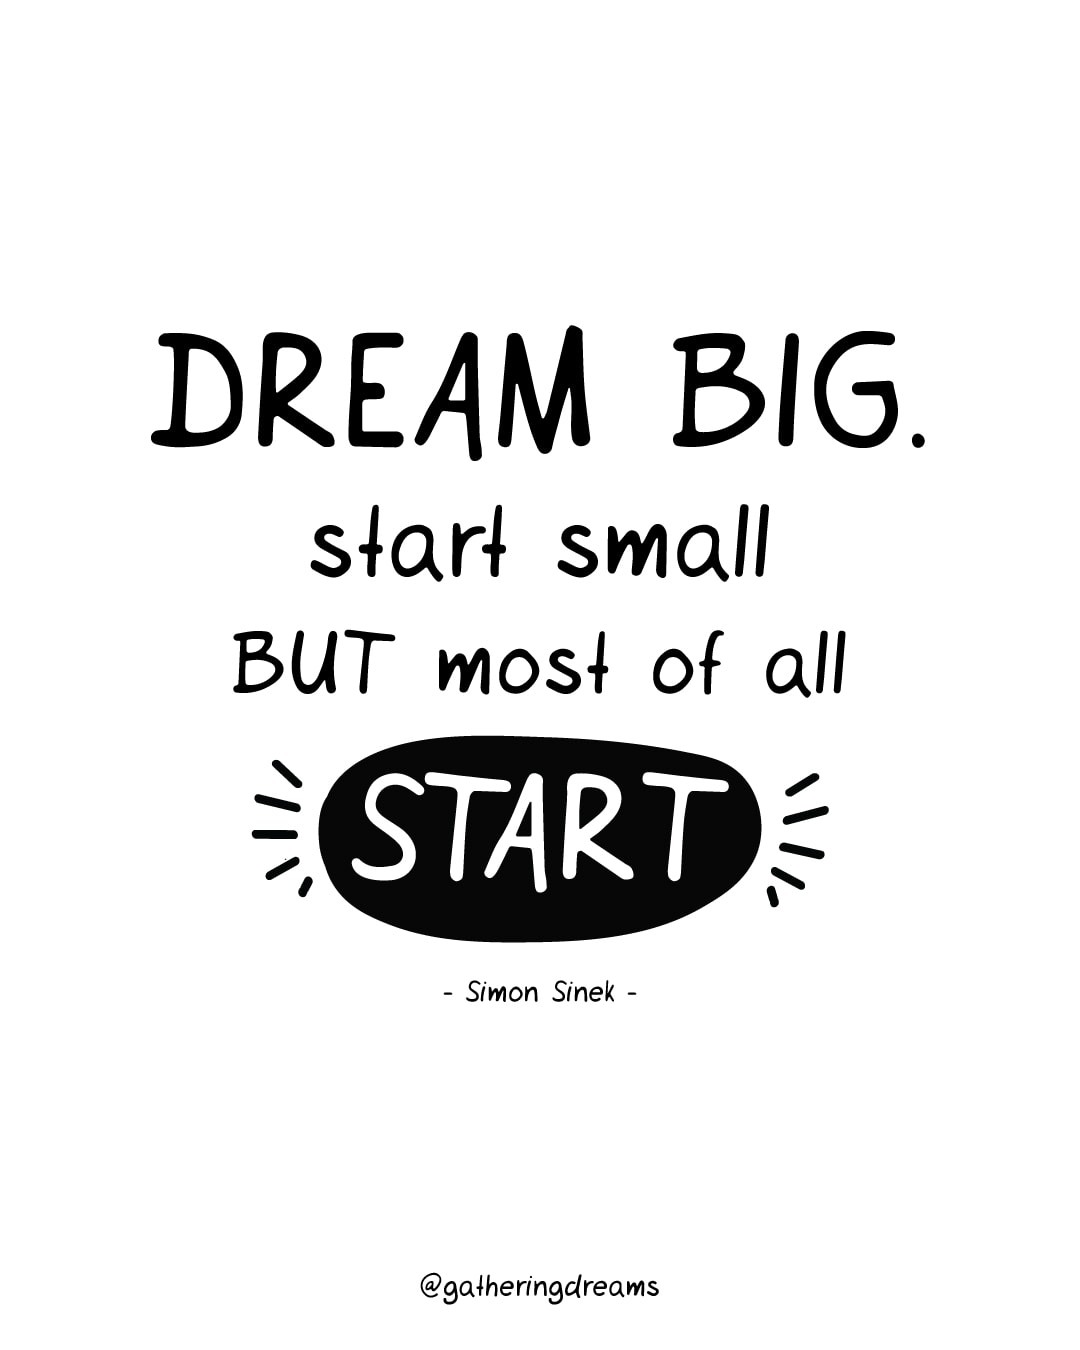 """Dream big. Start Small but most of all start."" - Dreams Quotes #inspiration #inspirationalquotes #motivationalquotes #dreams"